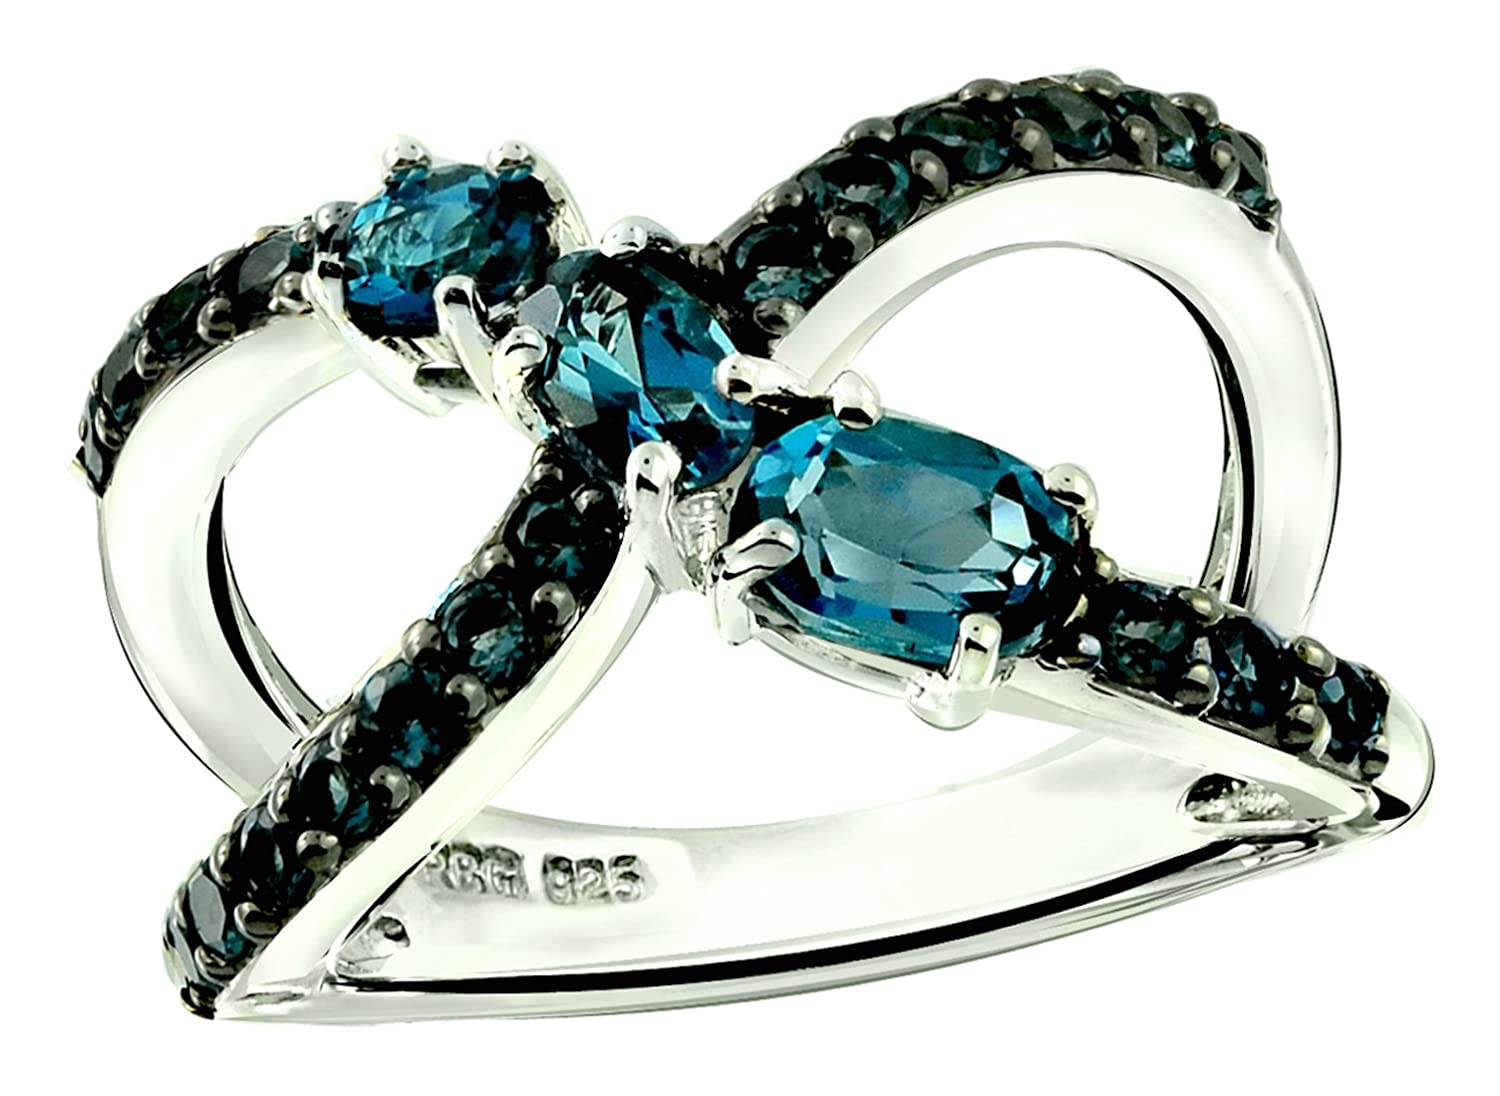 RB Gems Sterling Silver 925 Ring GENUINE GEMSTONE 1.70 Cts X-Cross Band Ring with Rhodium-Plated Finish